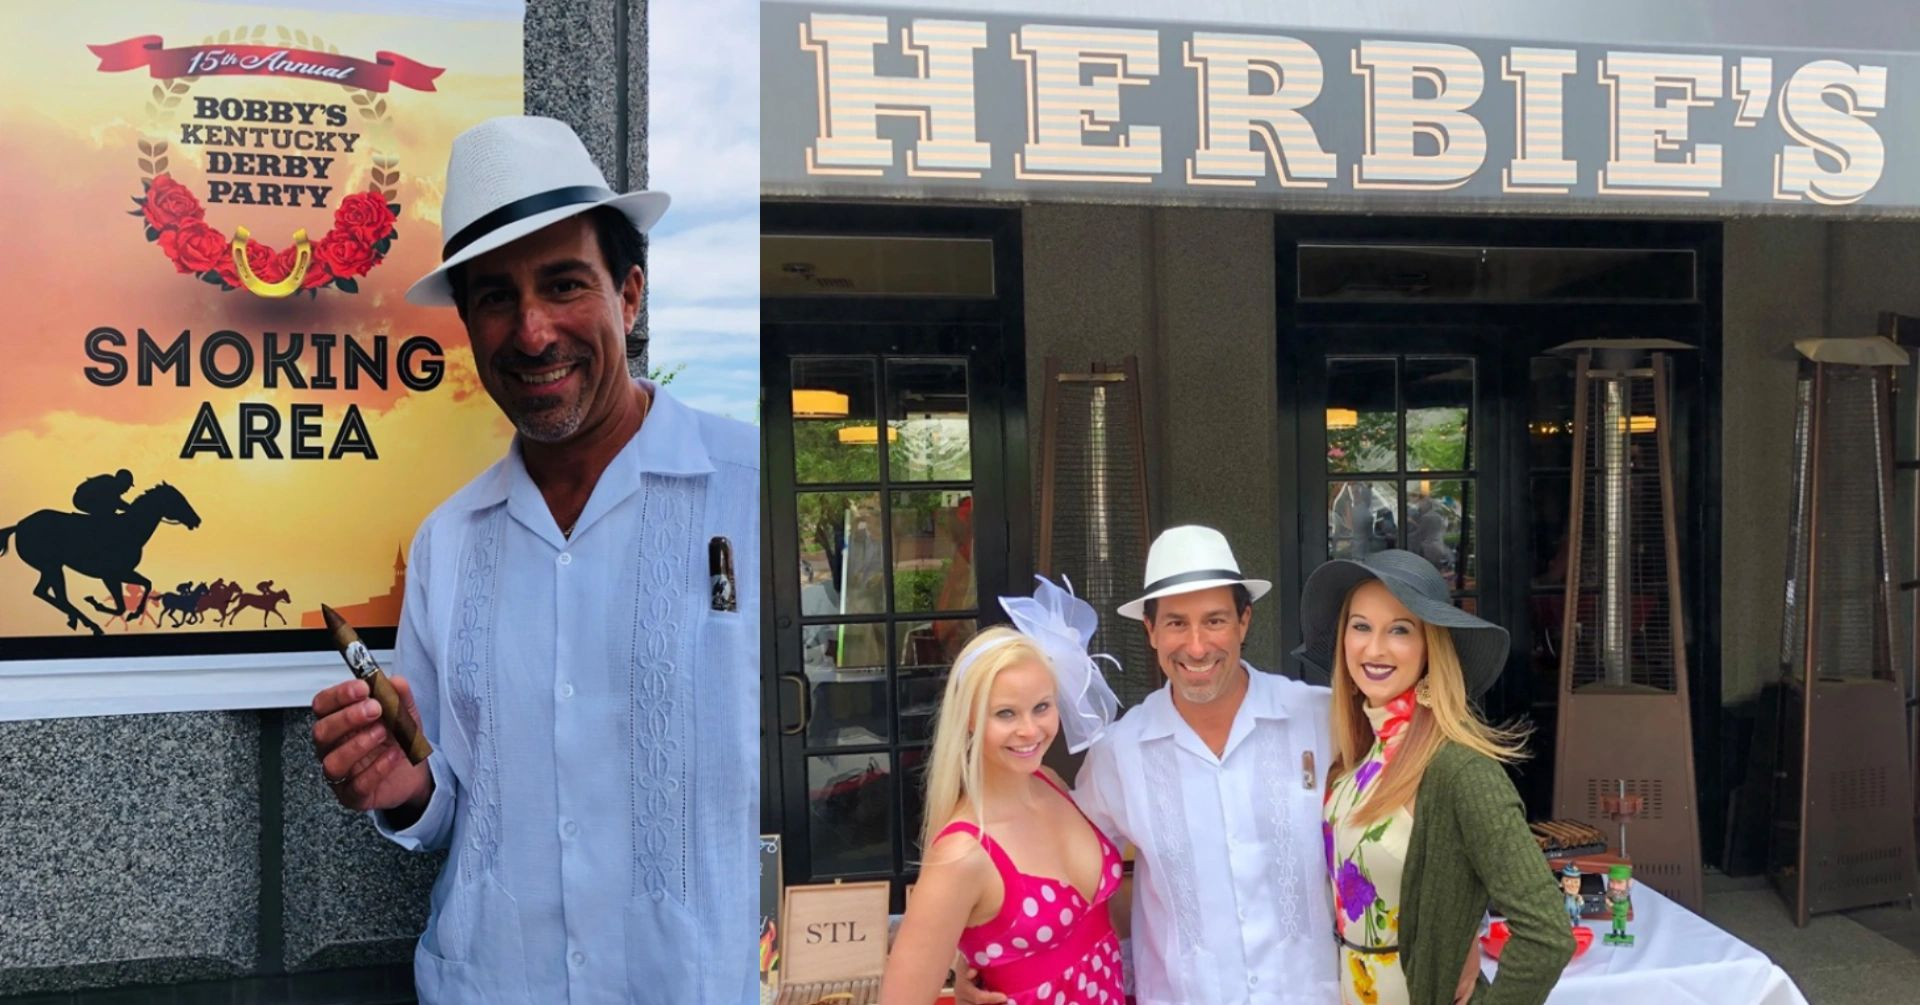 "{""blocks"":[{""key"":""b5jgf"",""text"":""\""Scott, Thank you for providing such a wonderful service of rolling cigars for my 15th annual Kentucky Derby party! I look forward to doing many more events with you!  -Bobby Horvath "",""type"":""unstyled"",""depth"":0,""inlineStyleRanges"":[],""entityRanges"":[],""data"":{}}],""entityMap"":{}}"